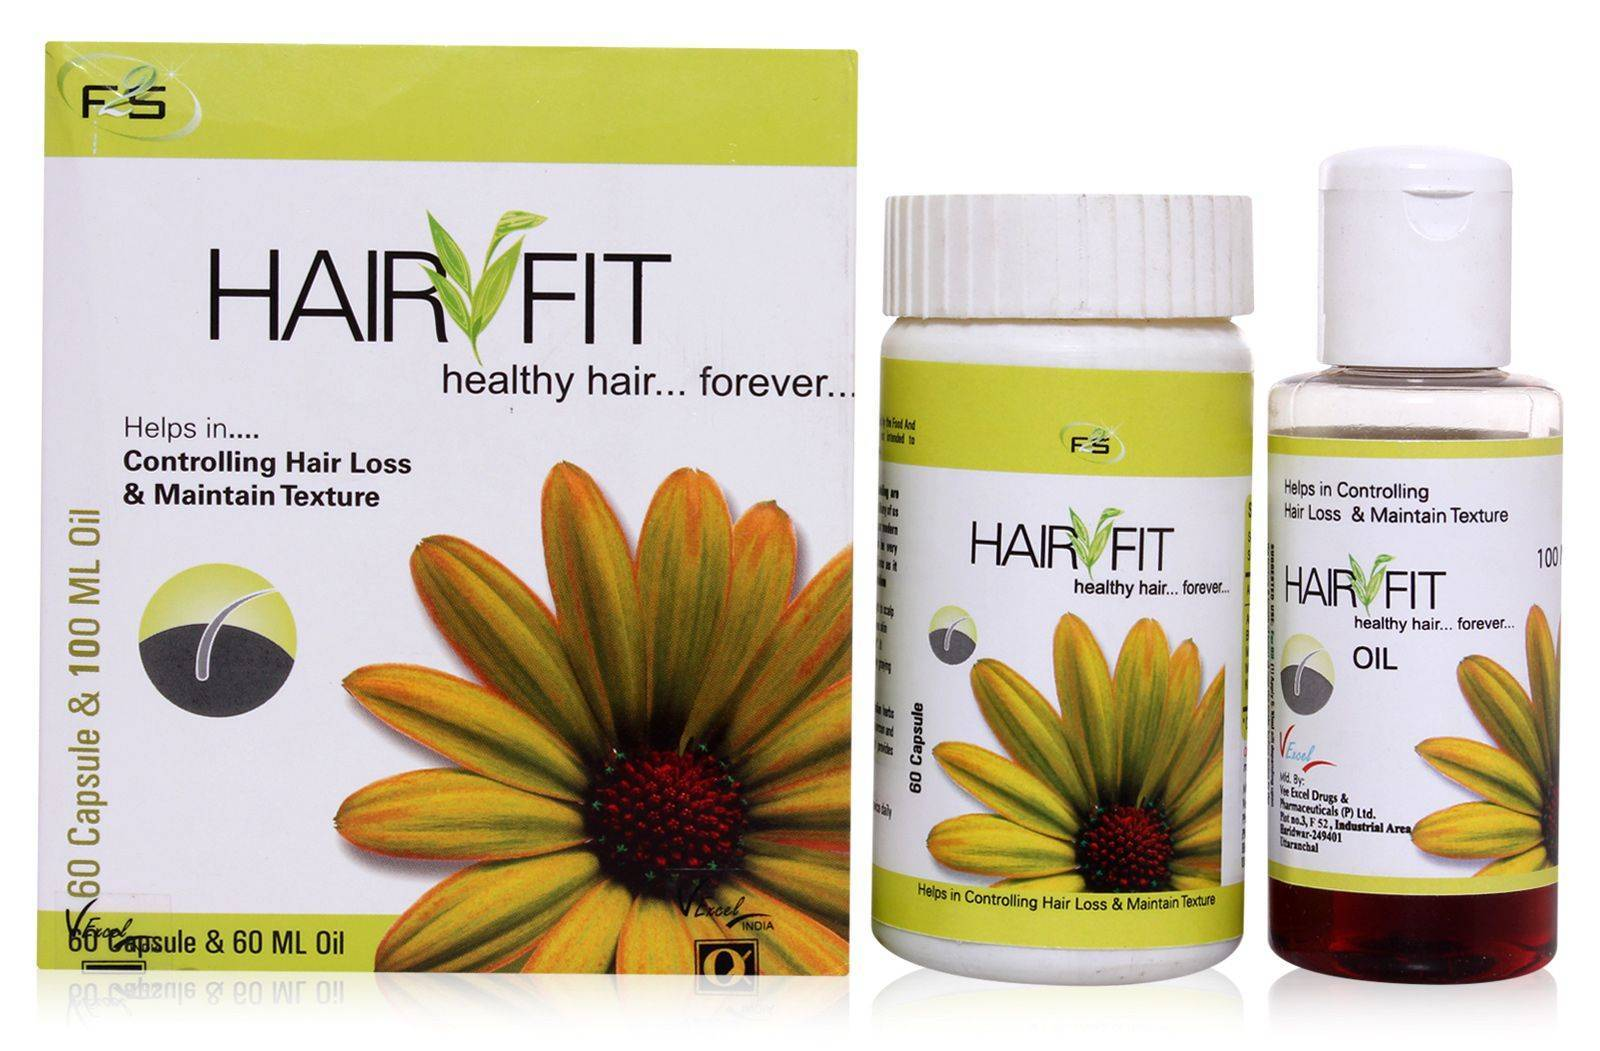 Hair Fit hair oil